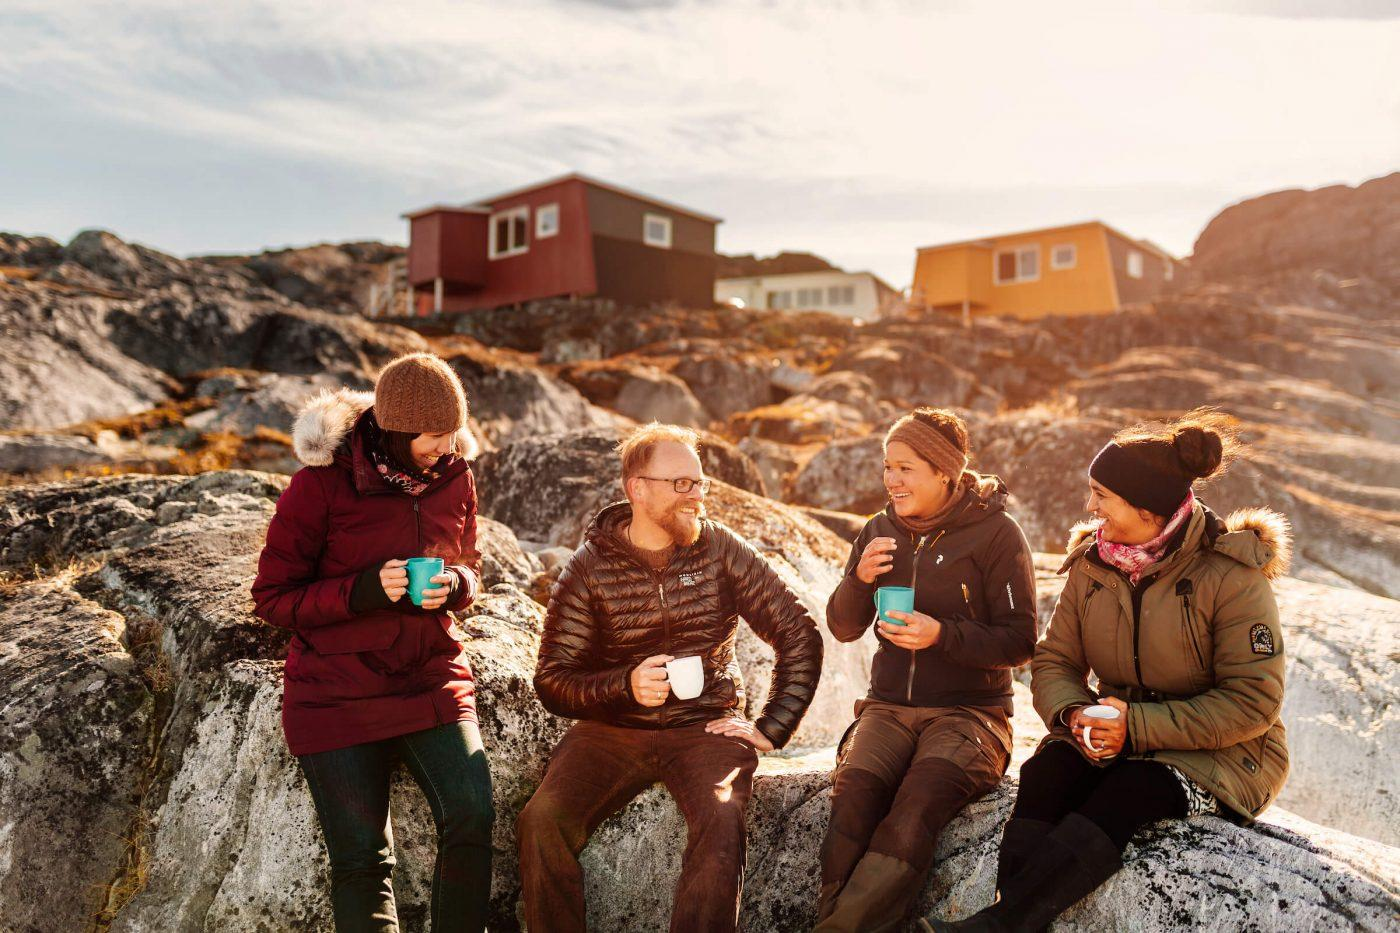 Group of friends drinking coffee on the beach by Inuk Hostels in Nuuk Greenland. Photo by Rebecca Gustafsson - Visit Greenland